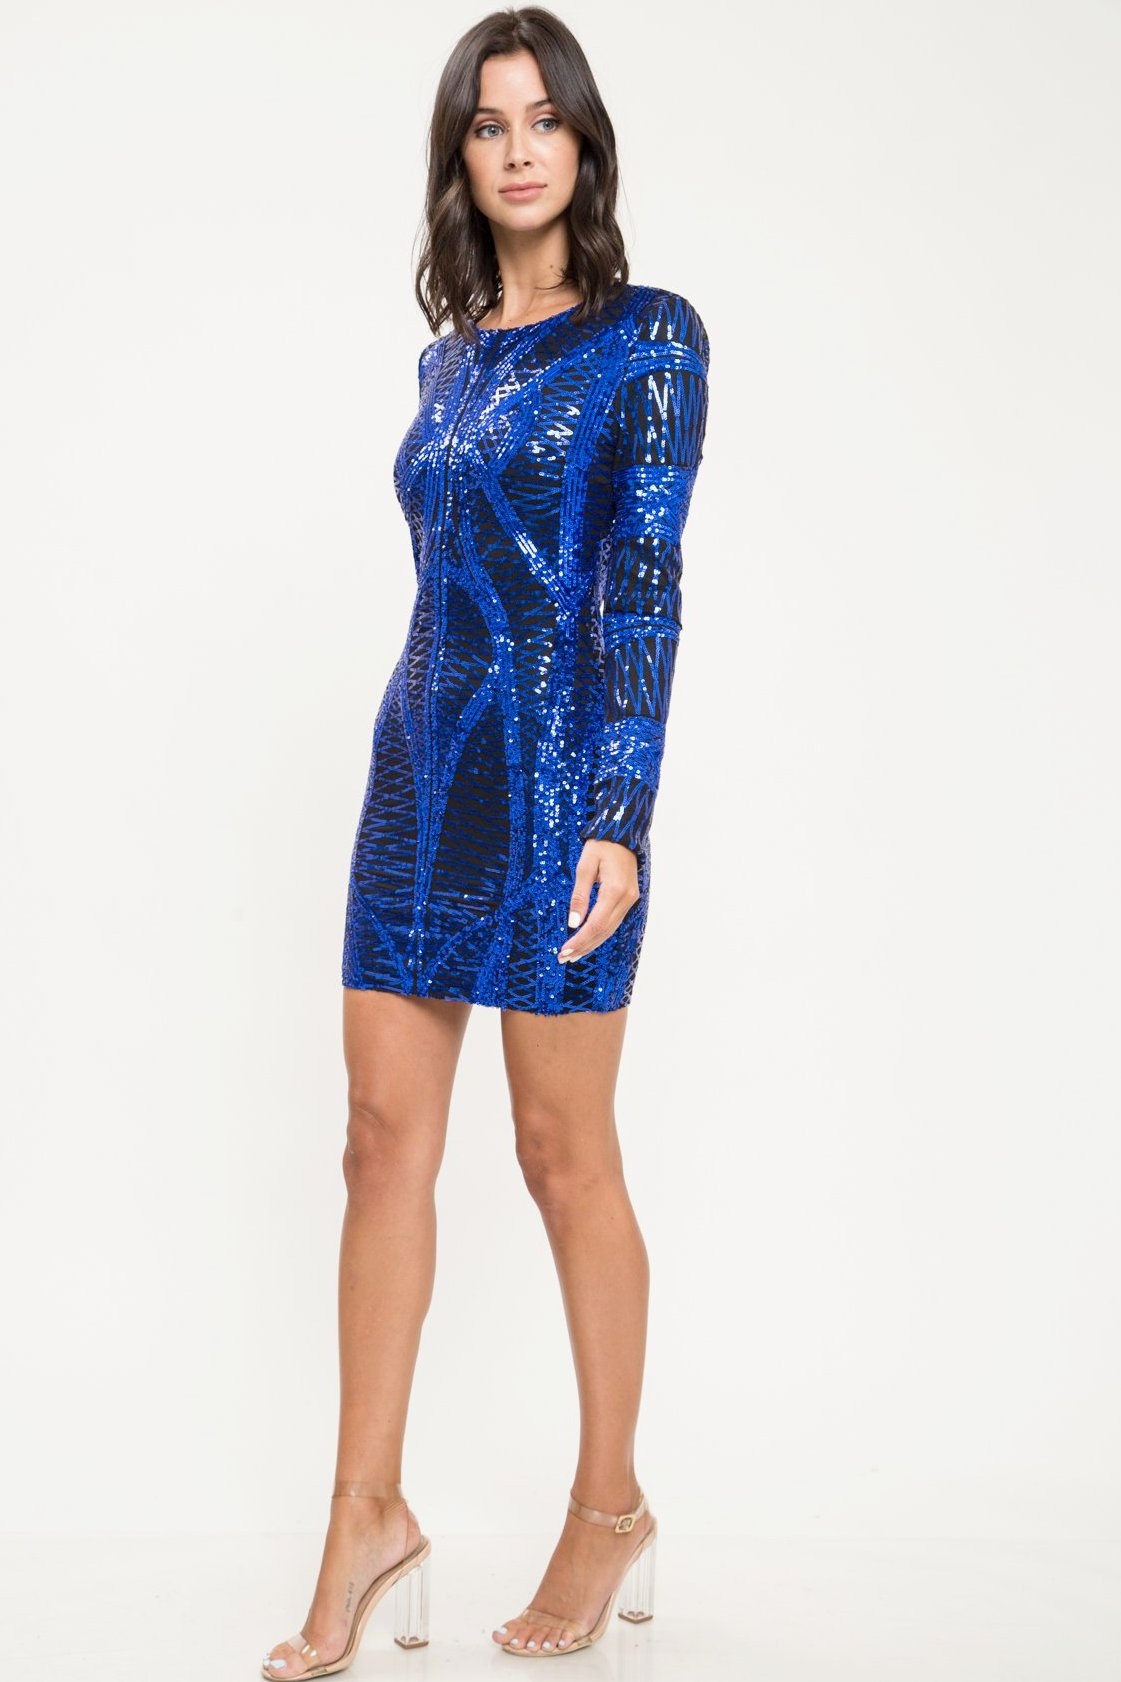 Euphoria Sequin Mini Dress - Geegeebae